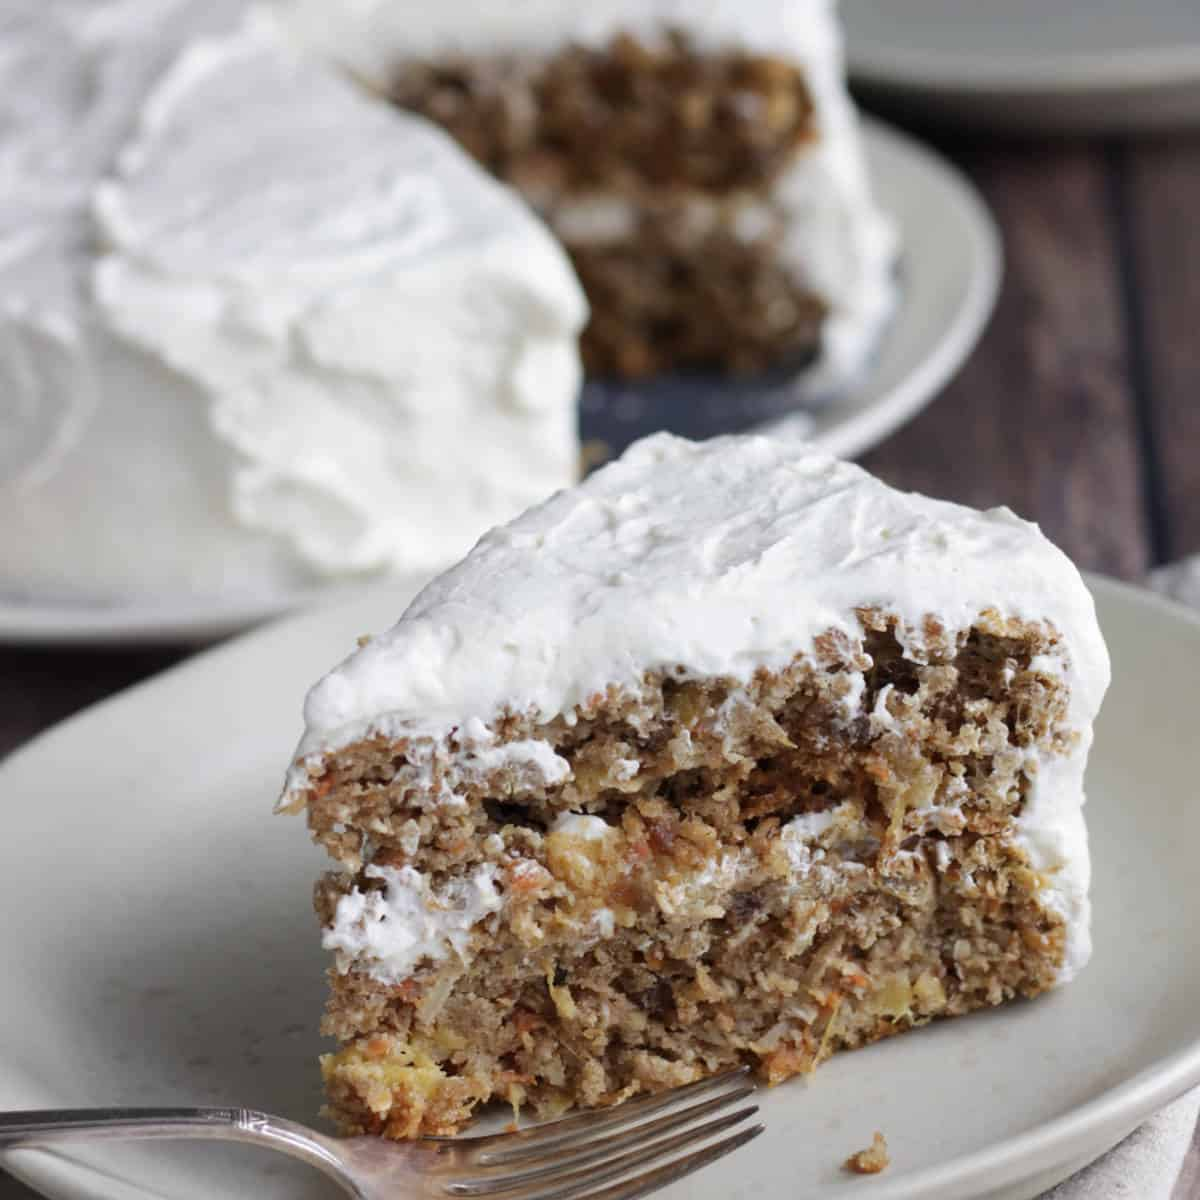 wedge of frosted carrot cake on plate with fork with remaining cake in background